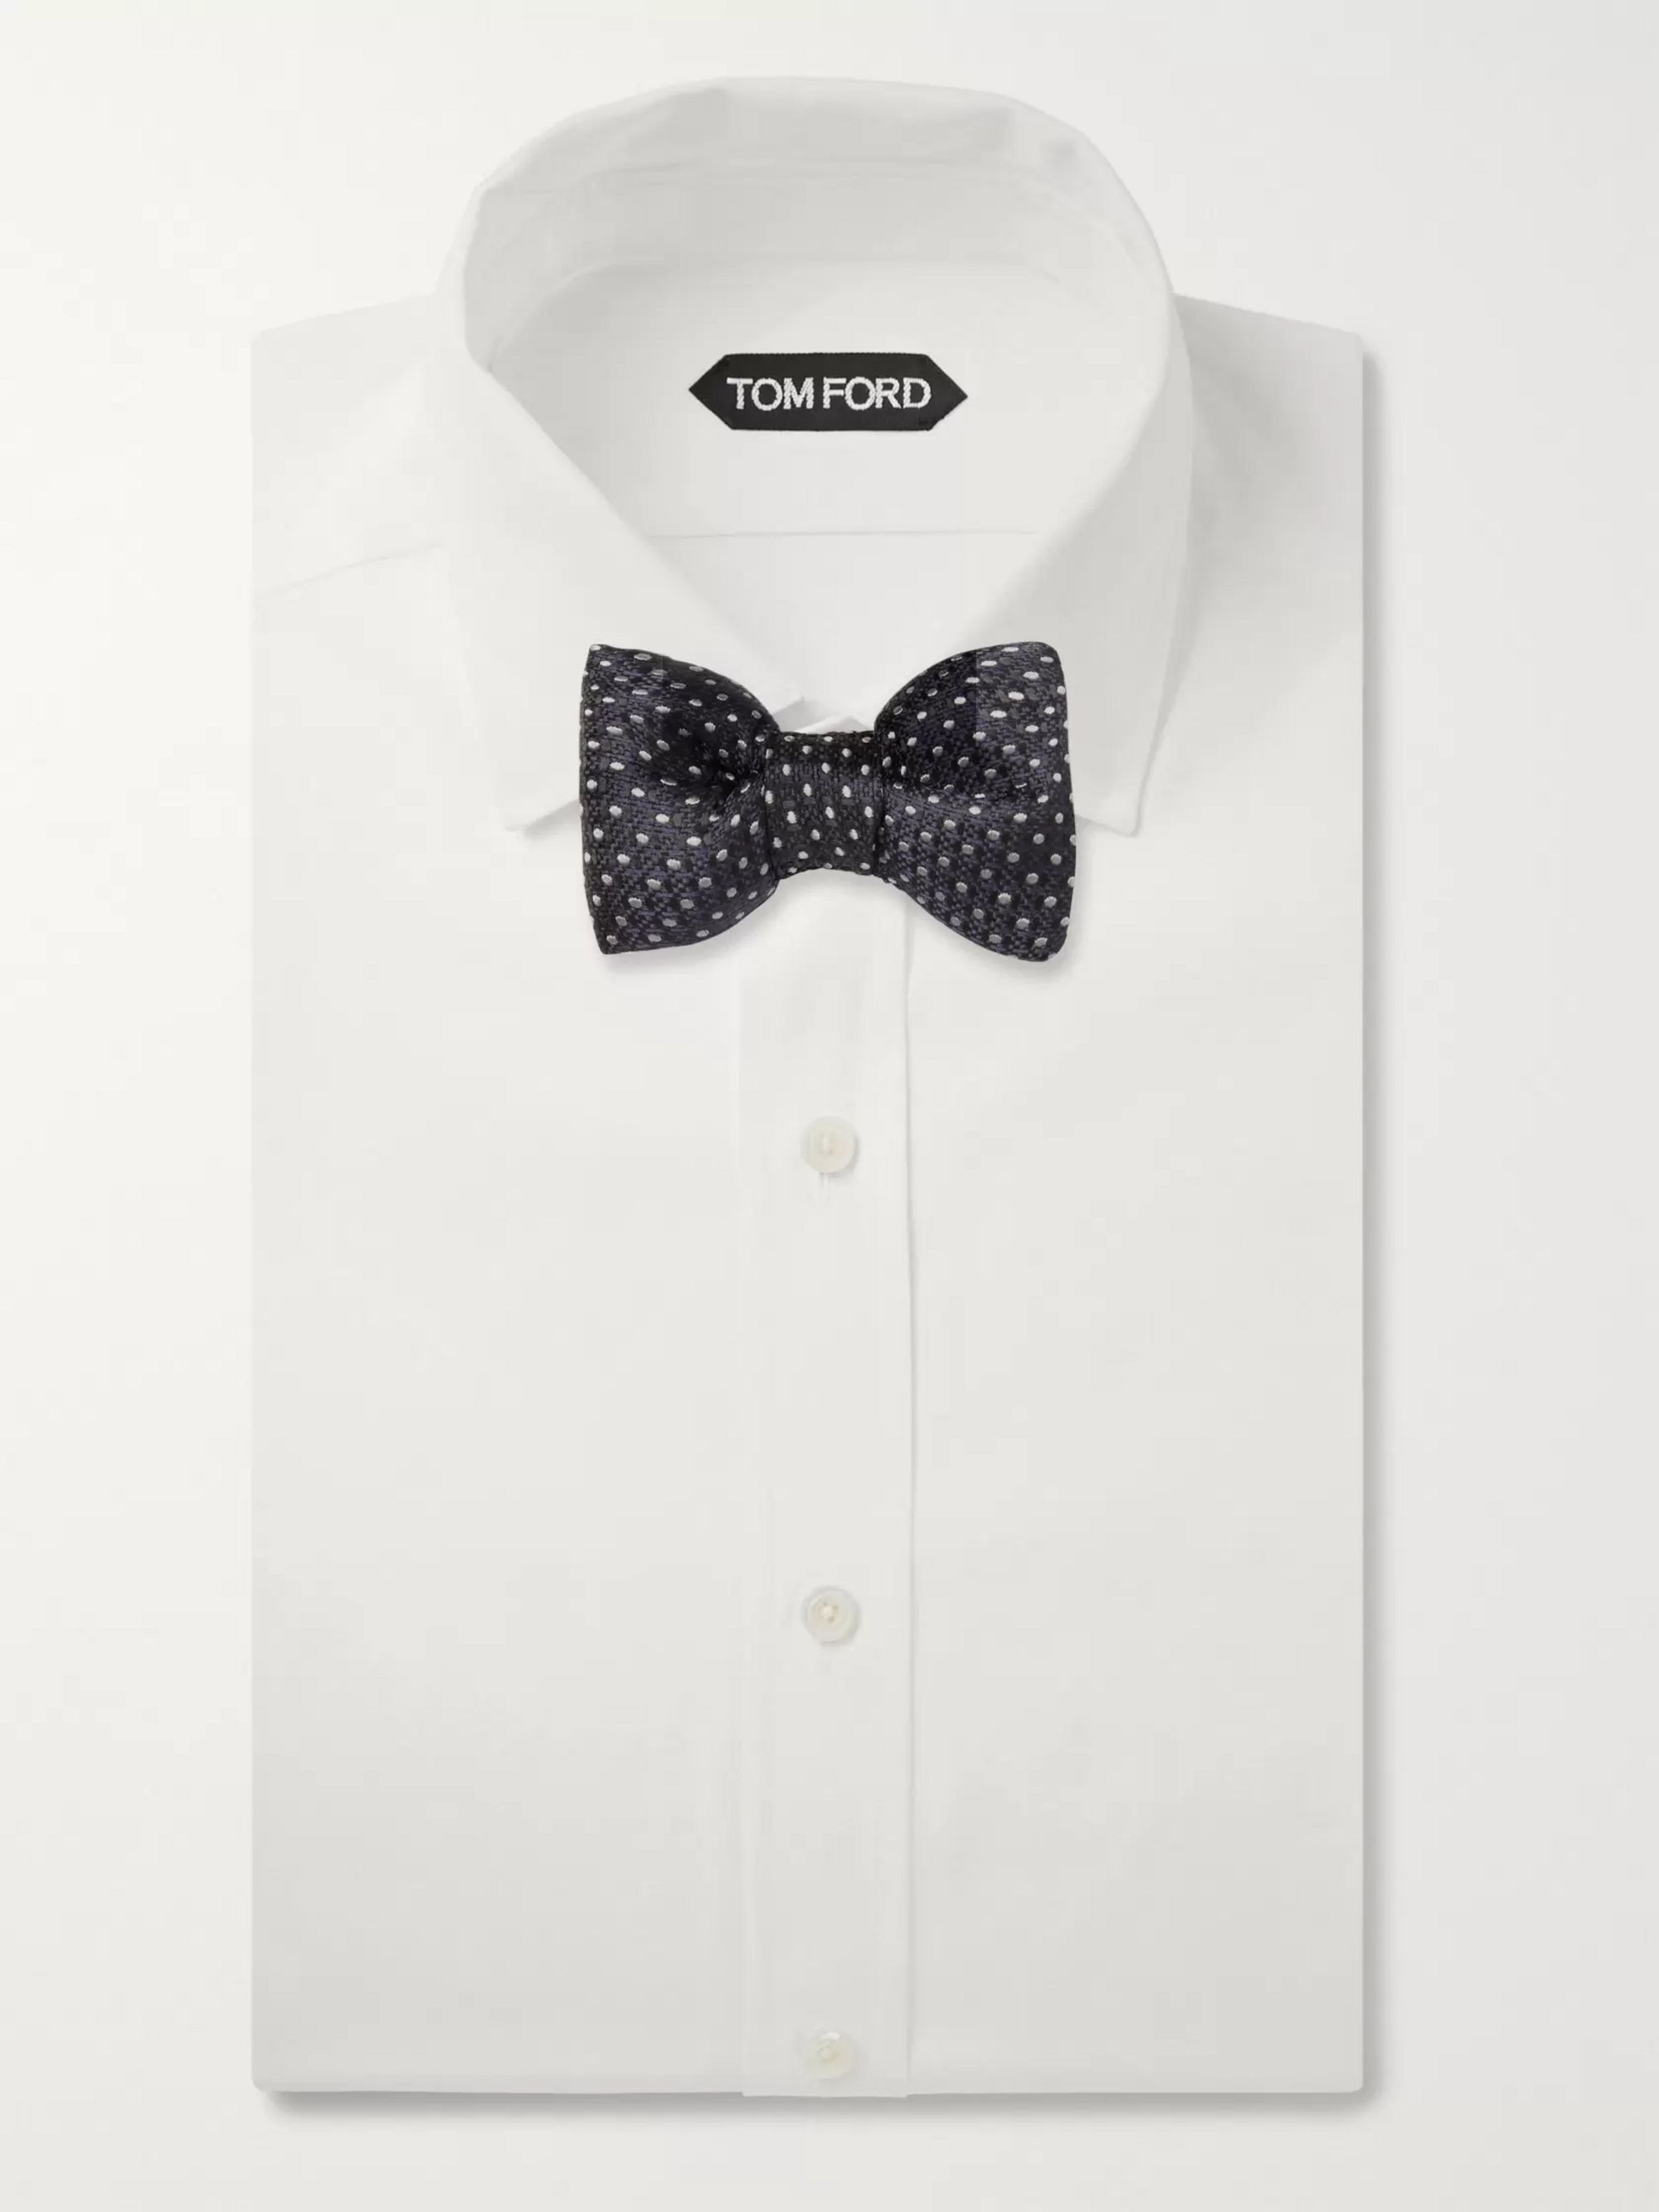 TOM FORD Pre-Tied Polka-Dot Basketweave Bow Tie